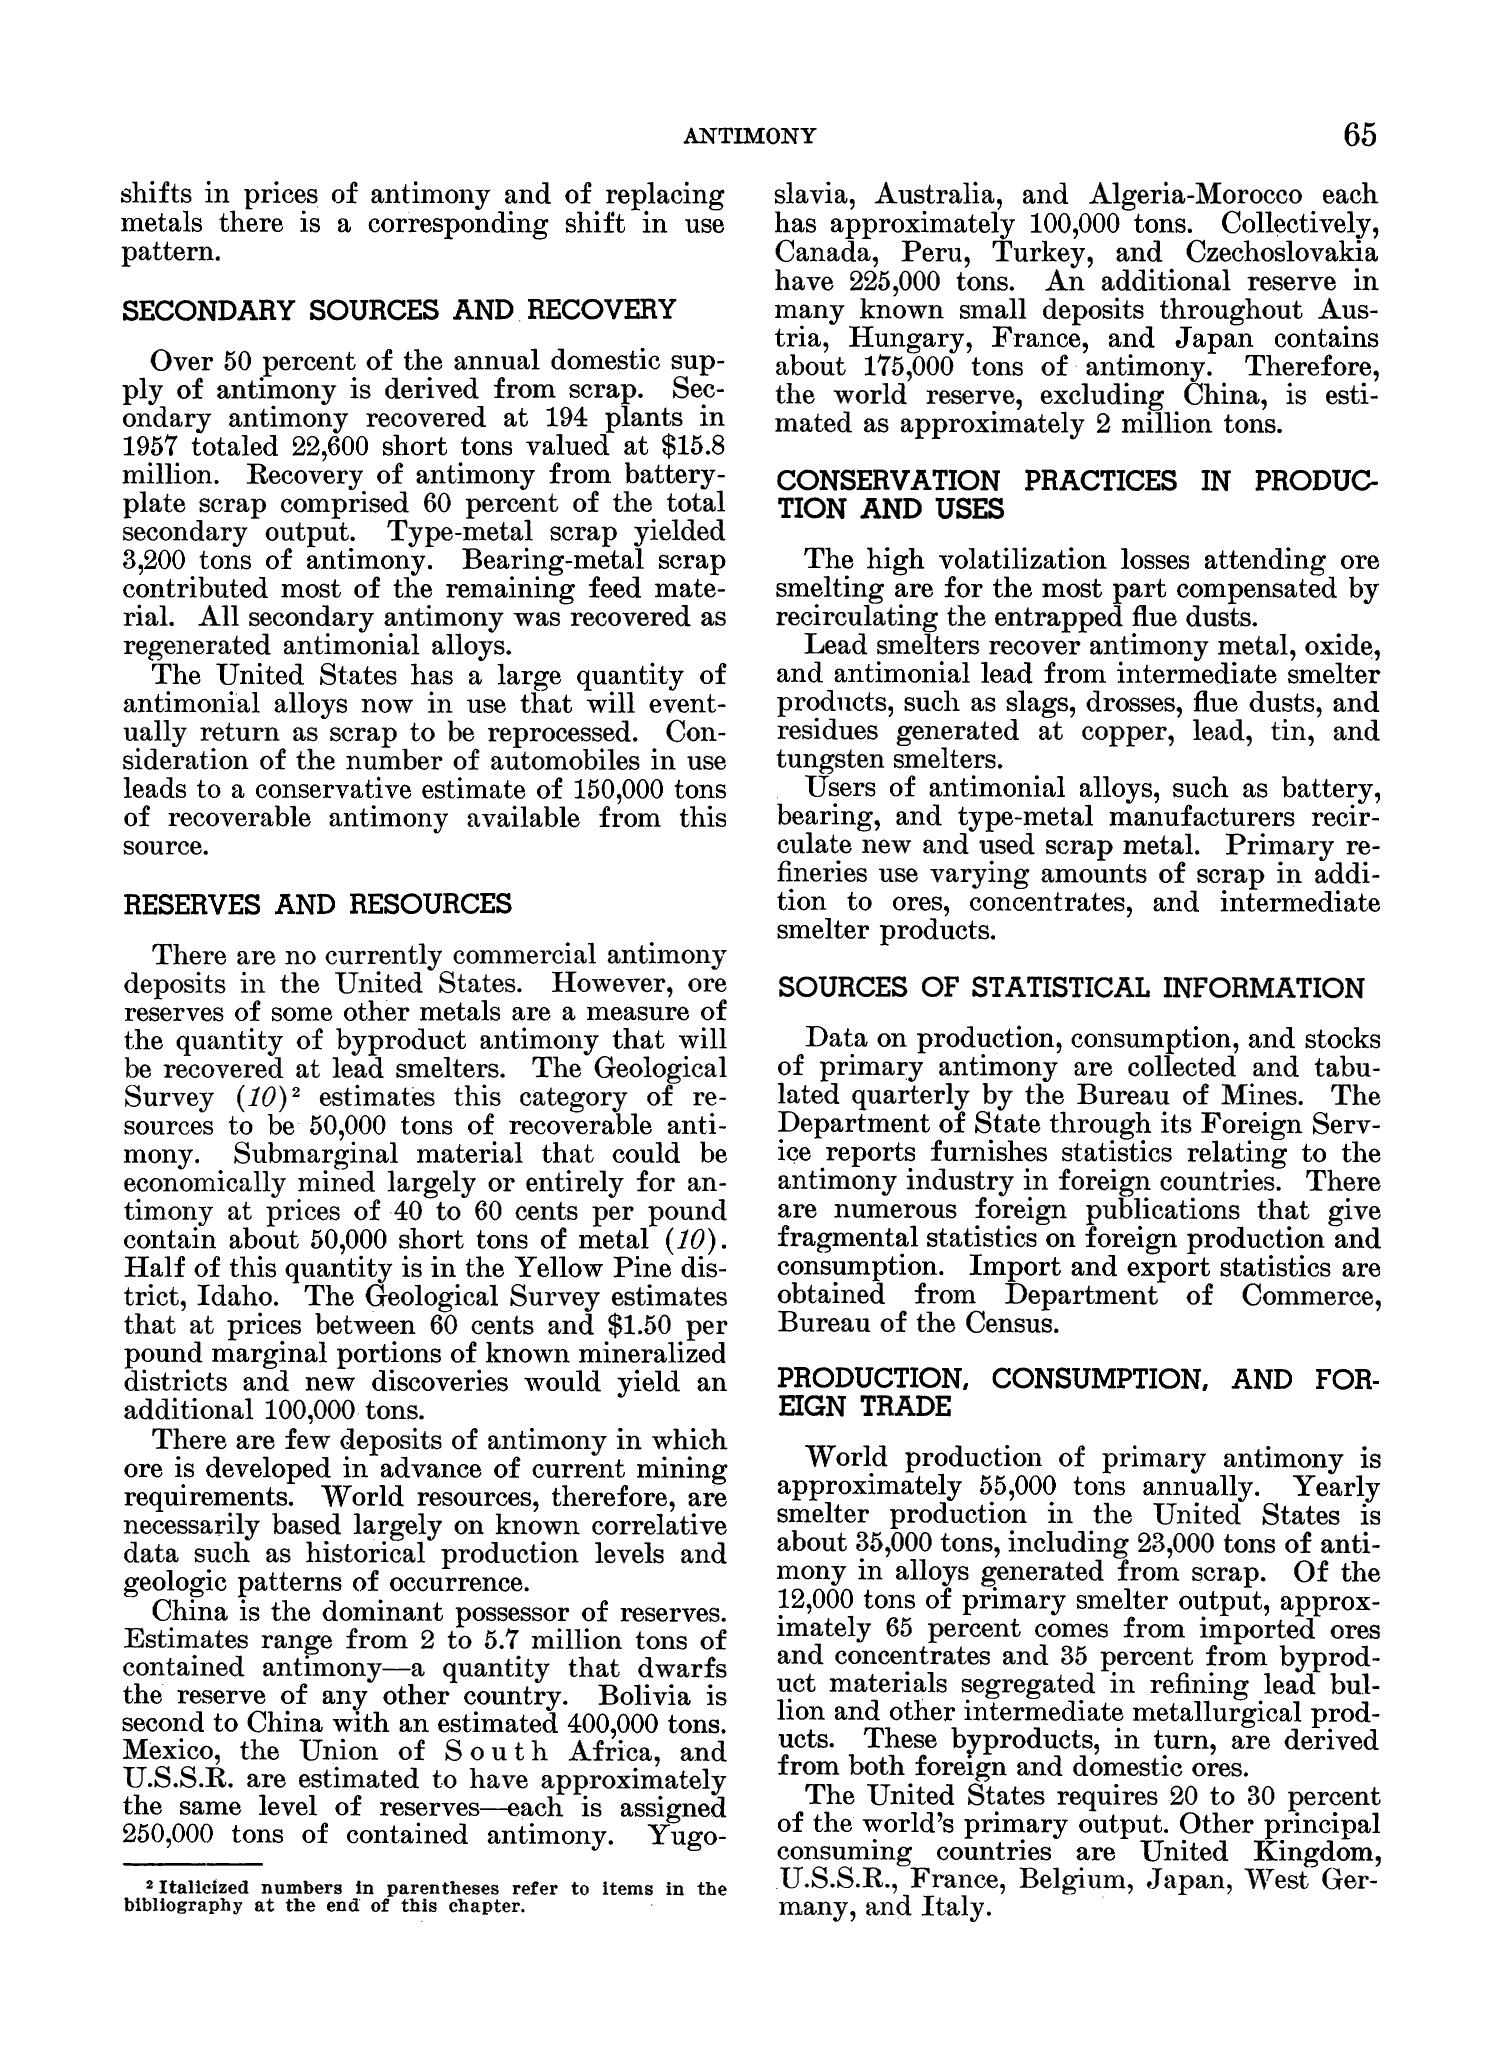 Mineral Facts and Problems: 1960 Edition                                                                                                      65